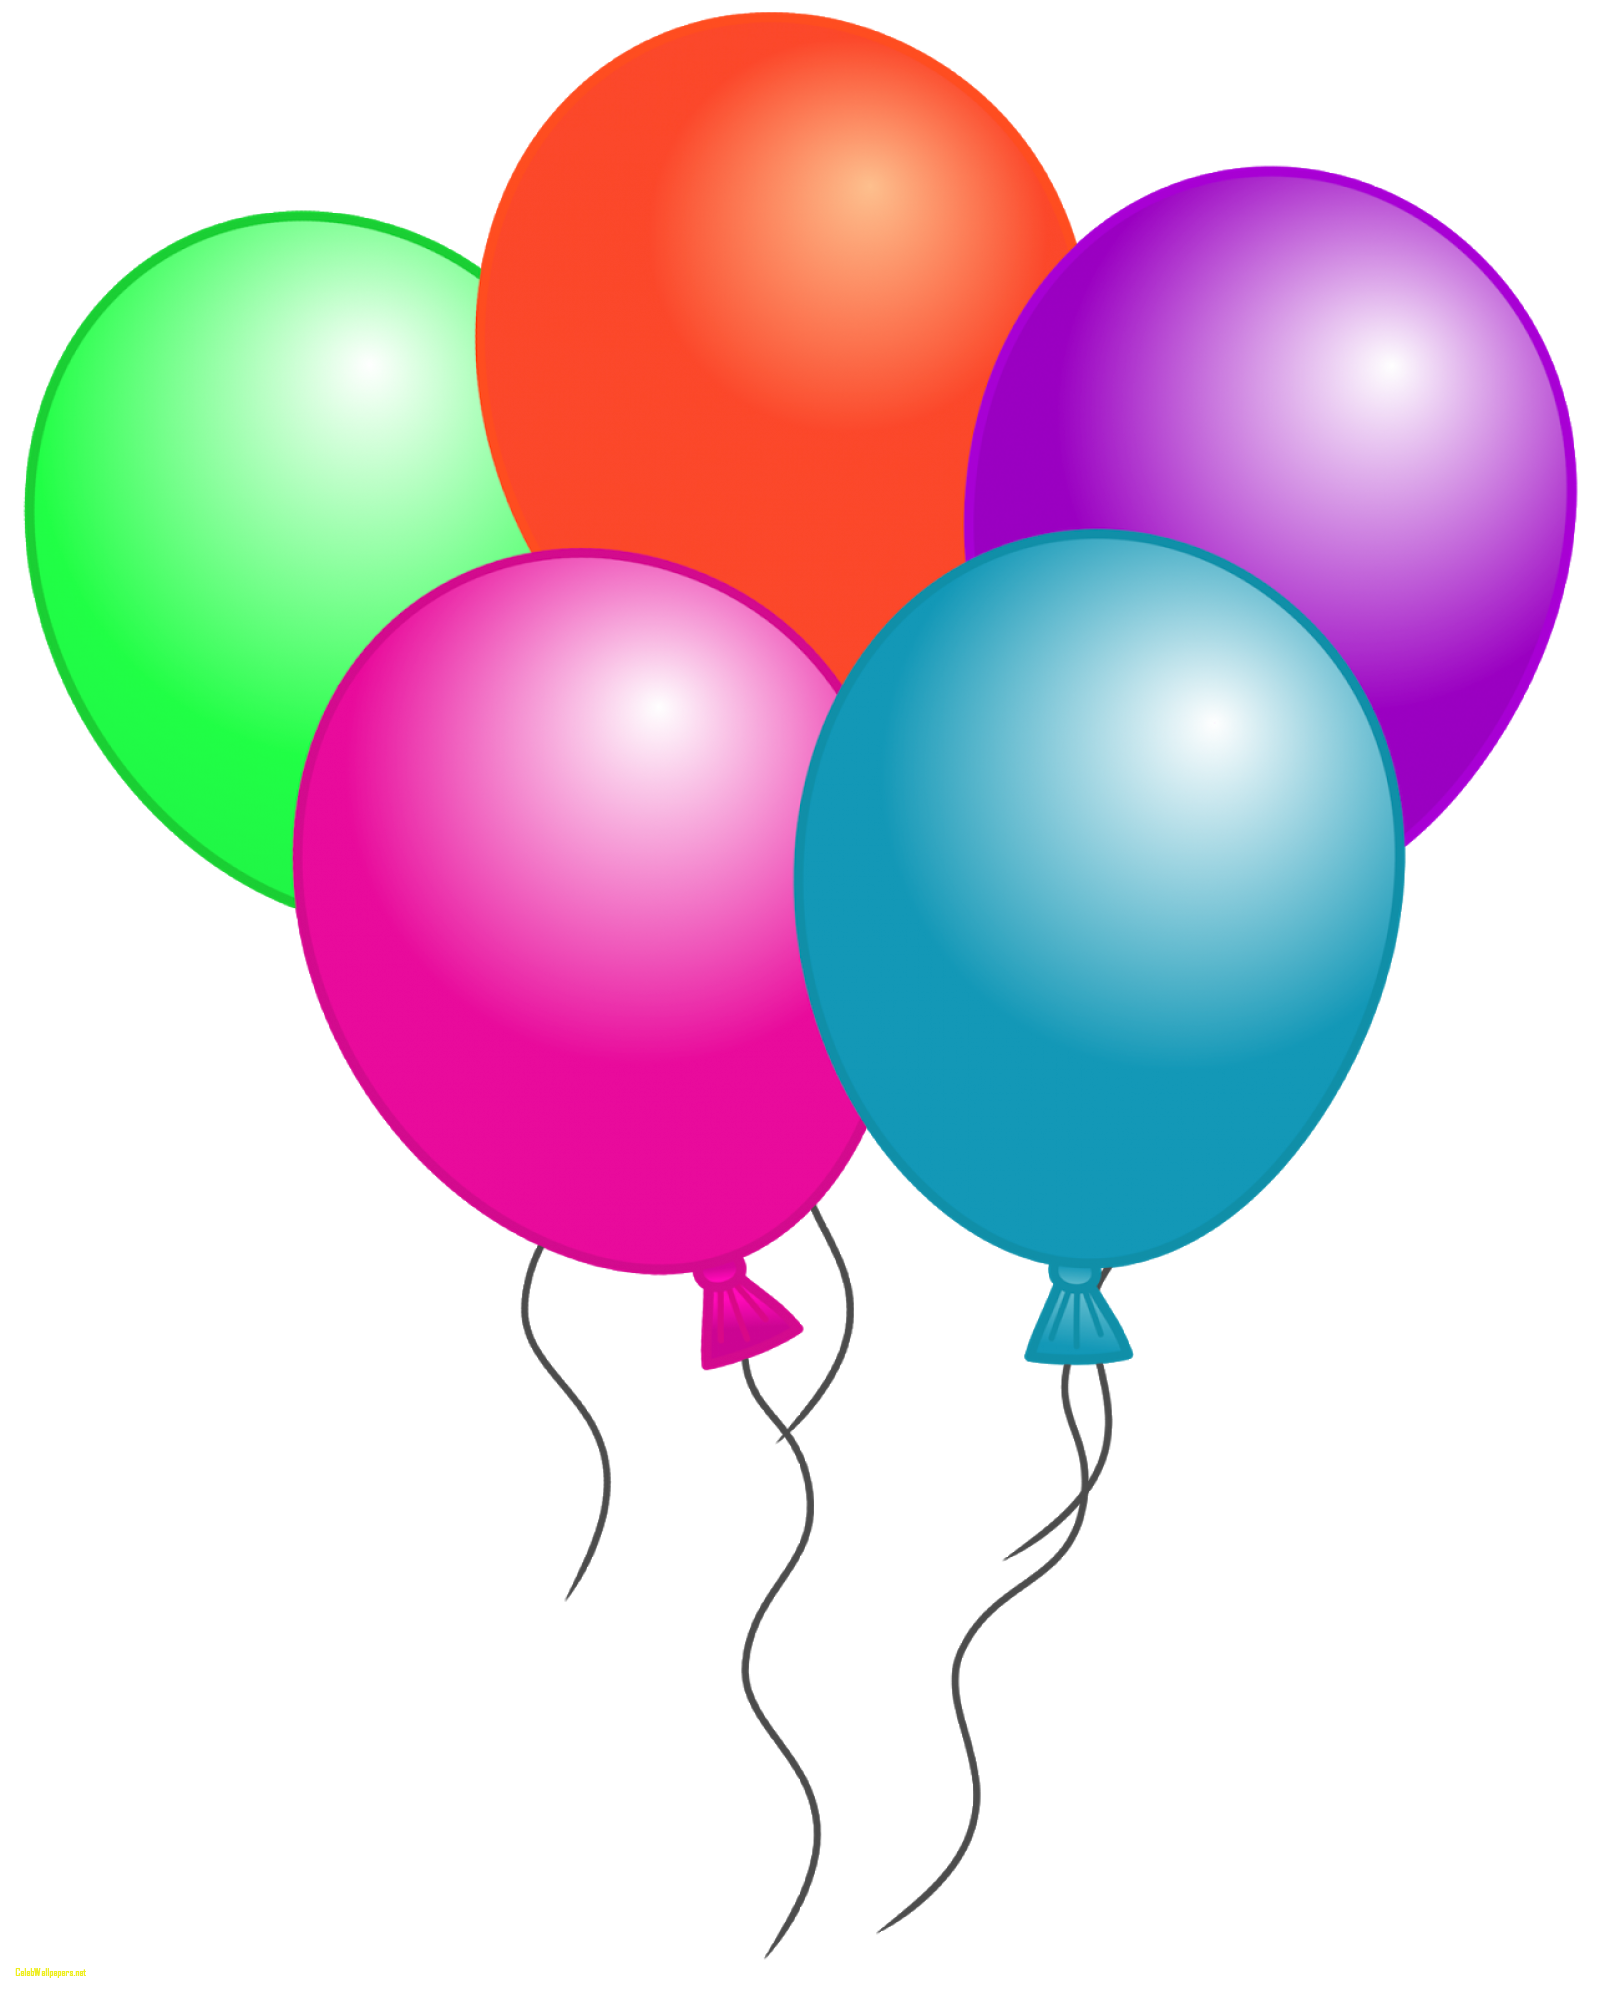 5 clipart balloon. Balloons images birthday free